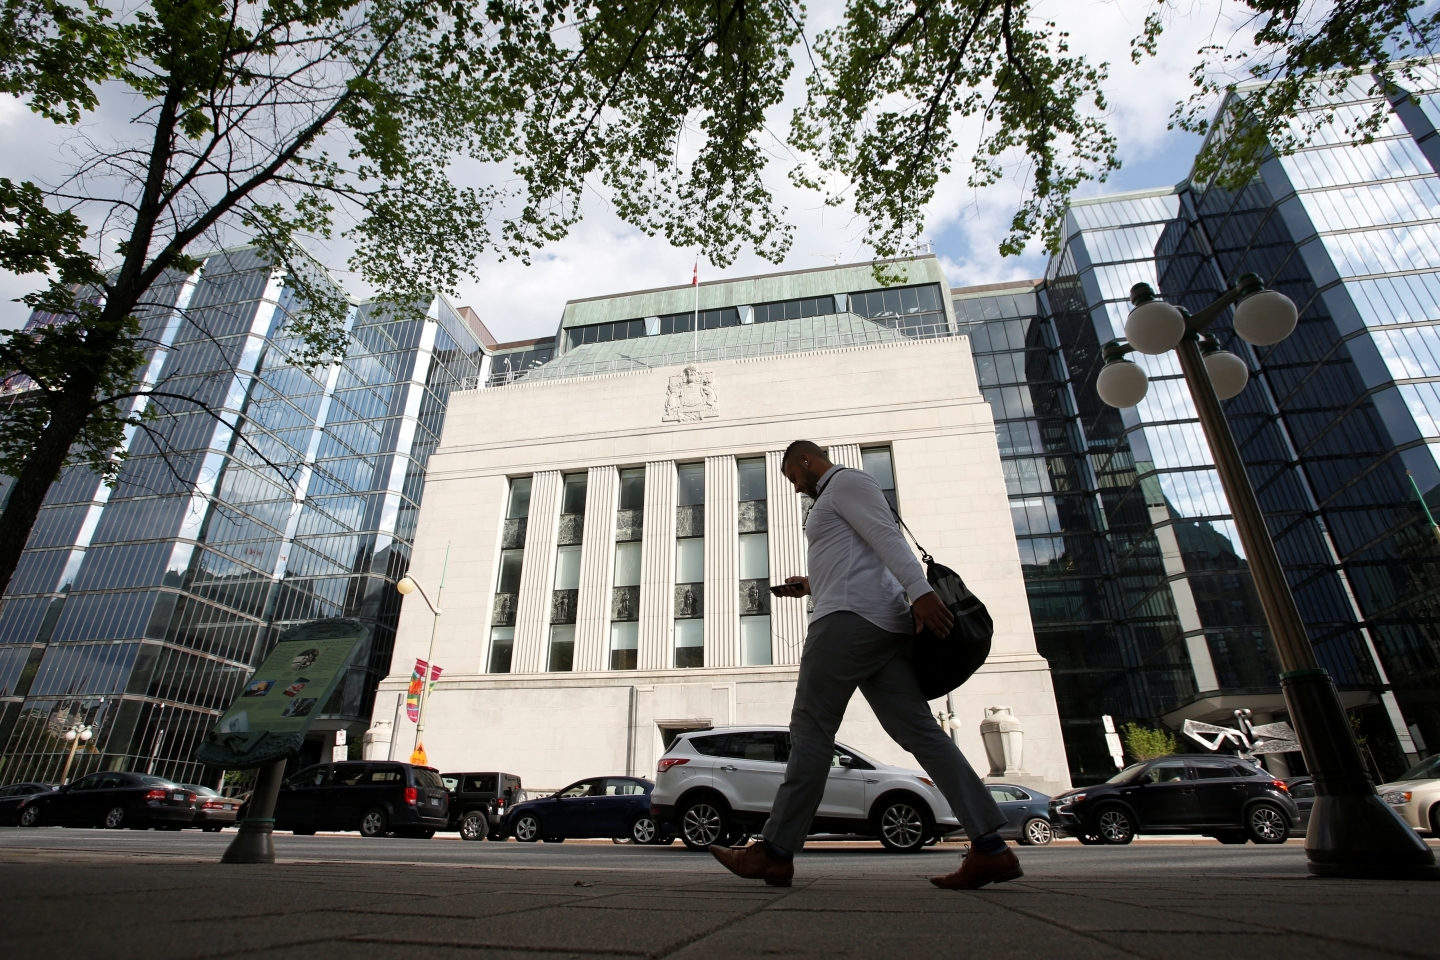 A pedestrian walks past the Bank of Canada building in Ottawa, Canada. (REUTERS/Chris Wattie)